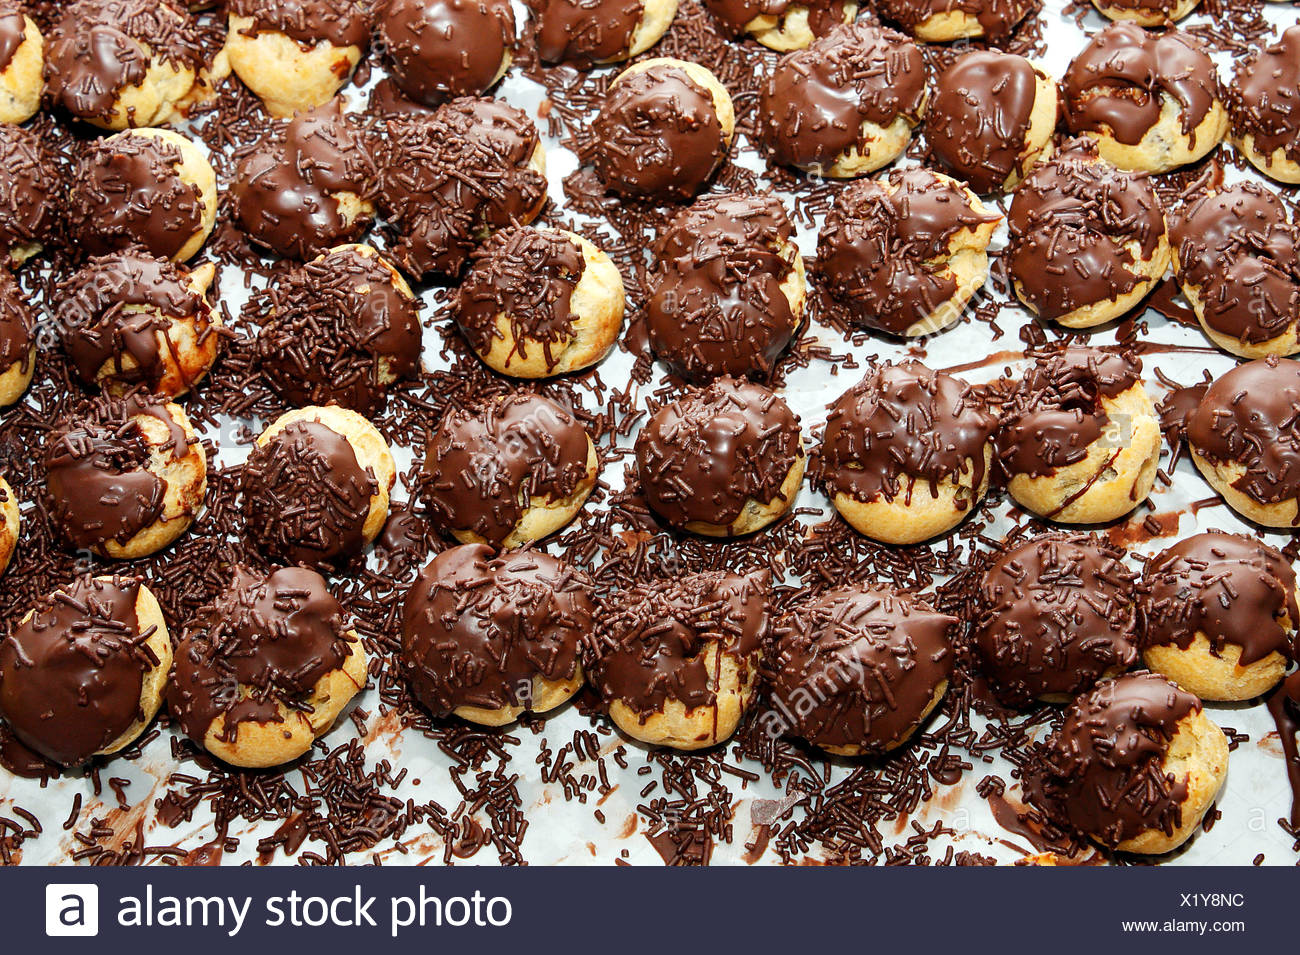 chocolate Choux pastry - Stock Image